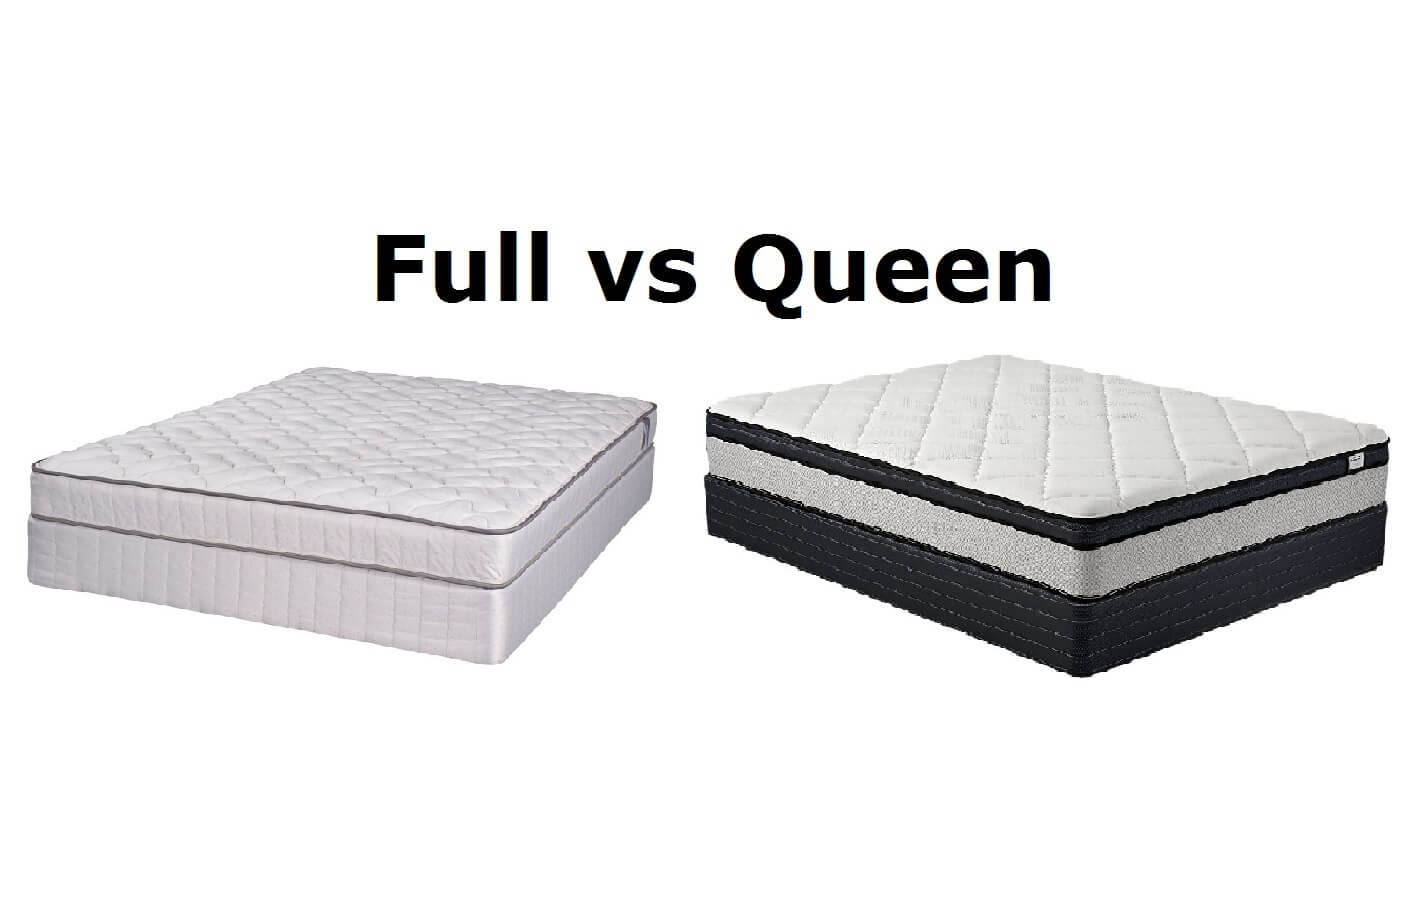 Queen vs full bed size